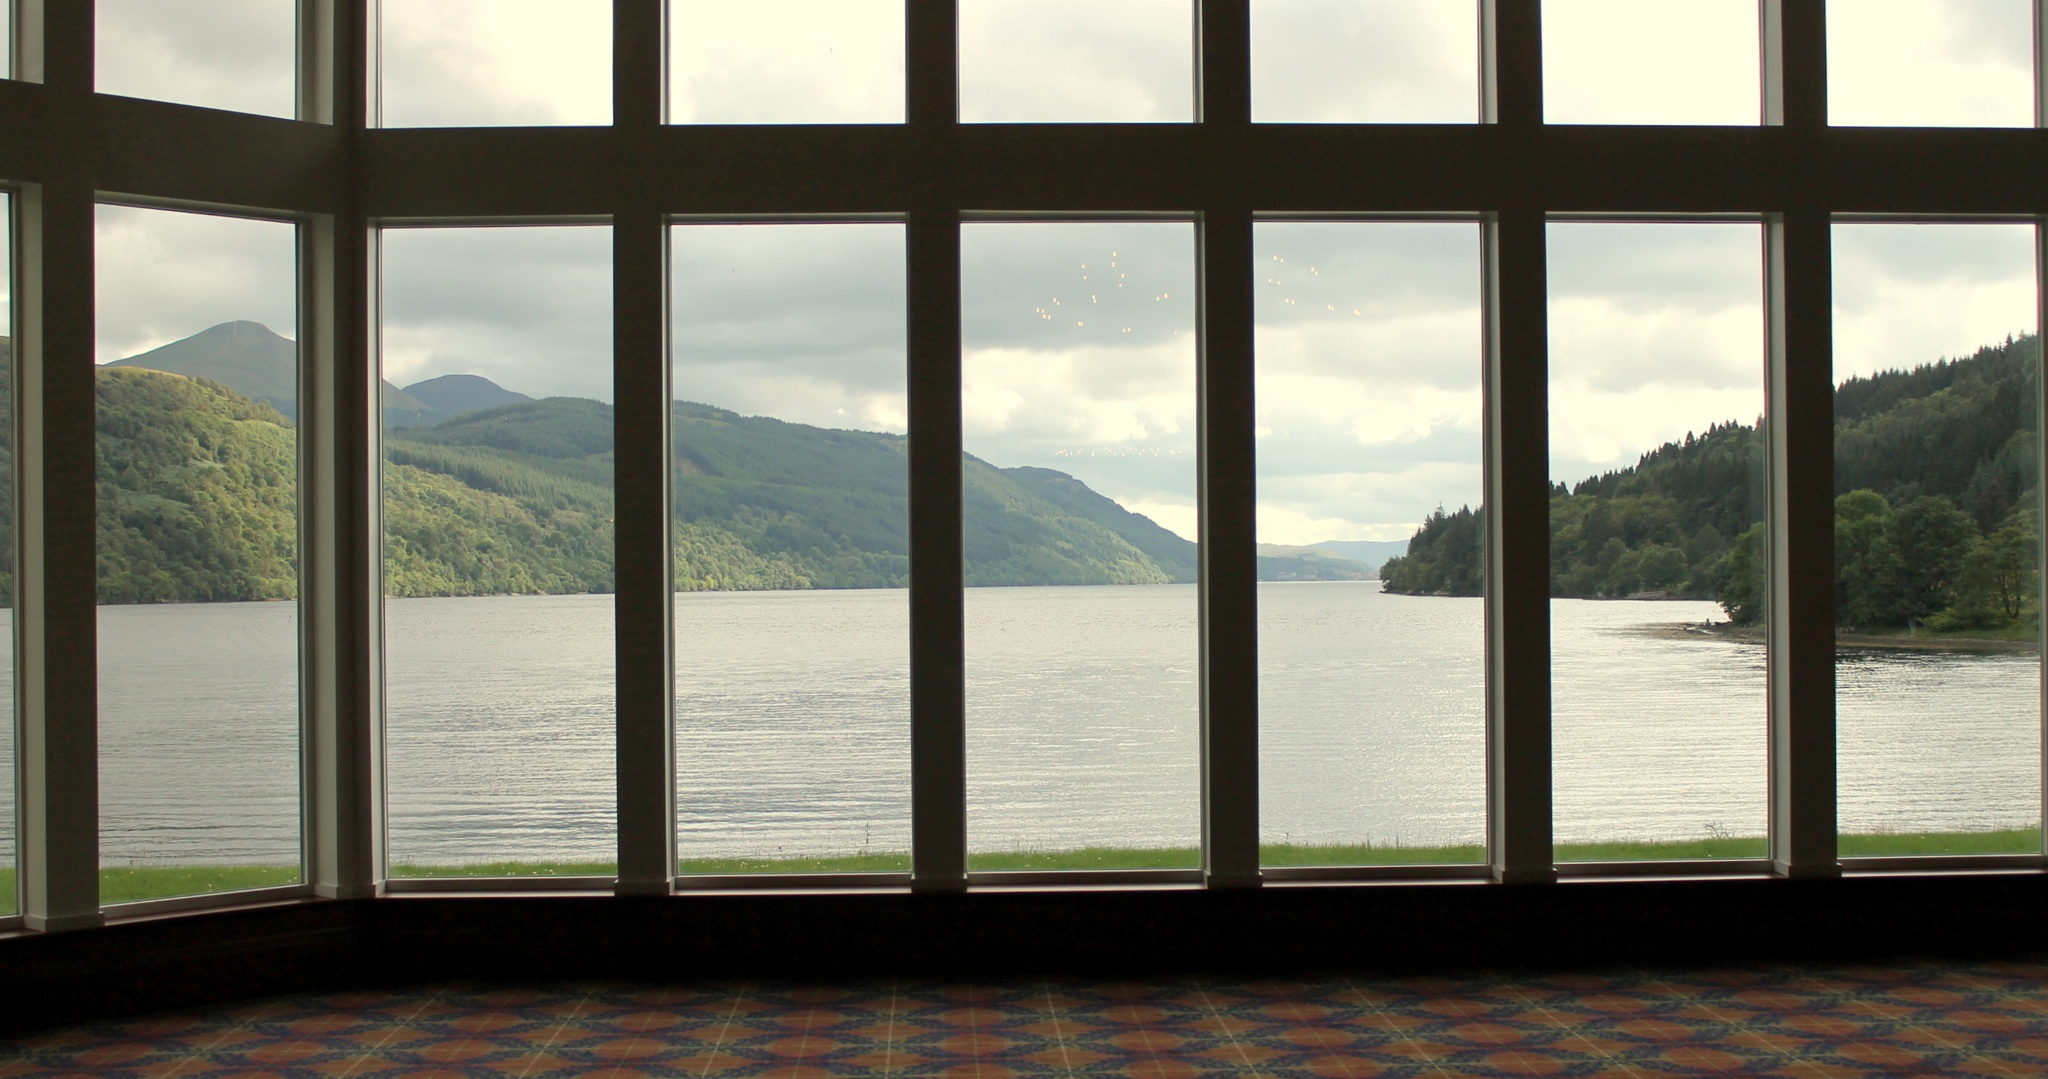 Loch Long view from Ardgarten Hotel (Scotland) by Tony Bent